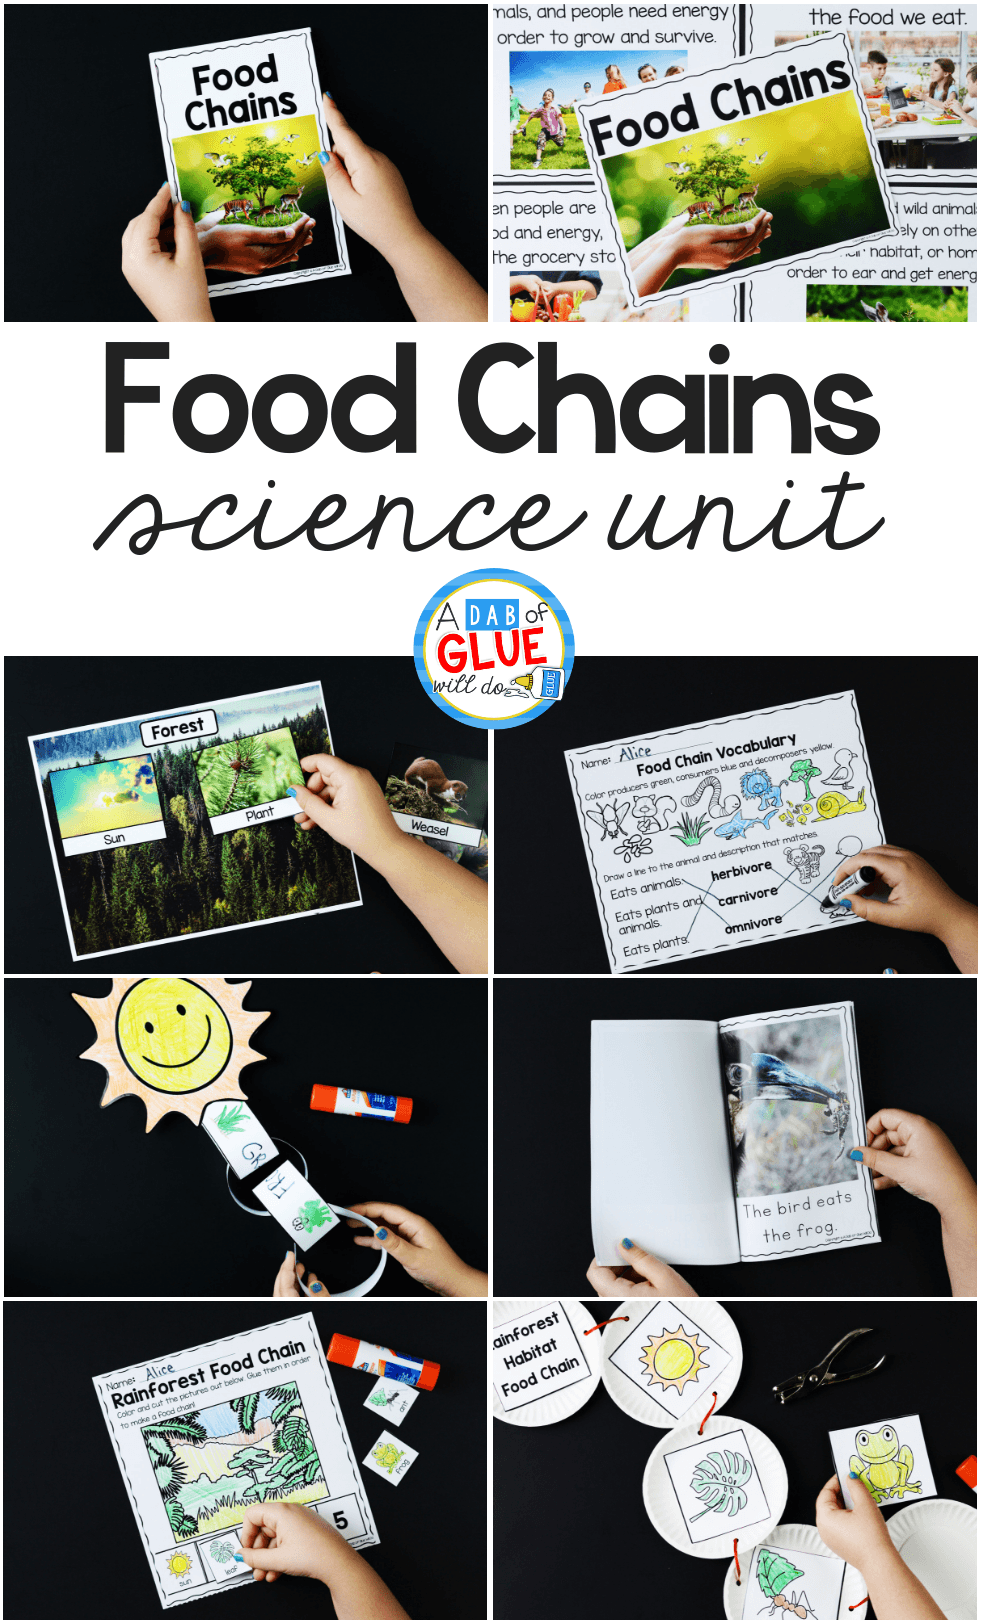 medium resolution of Food Chains - A Dab of Glue Will Do